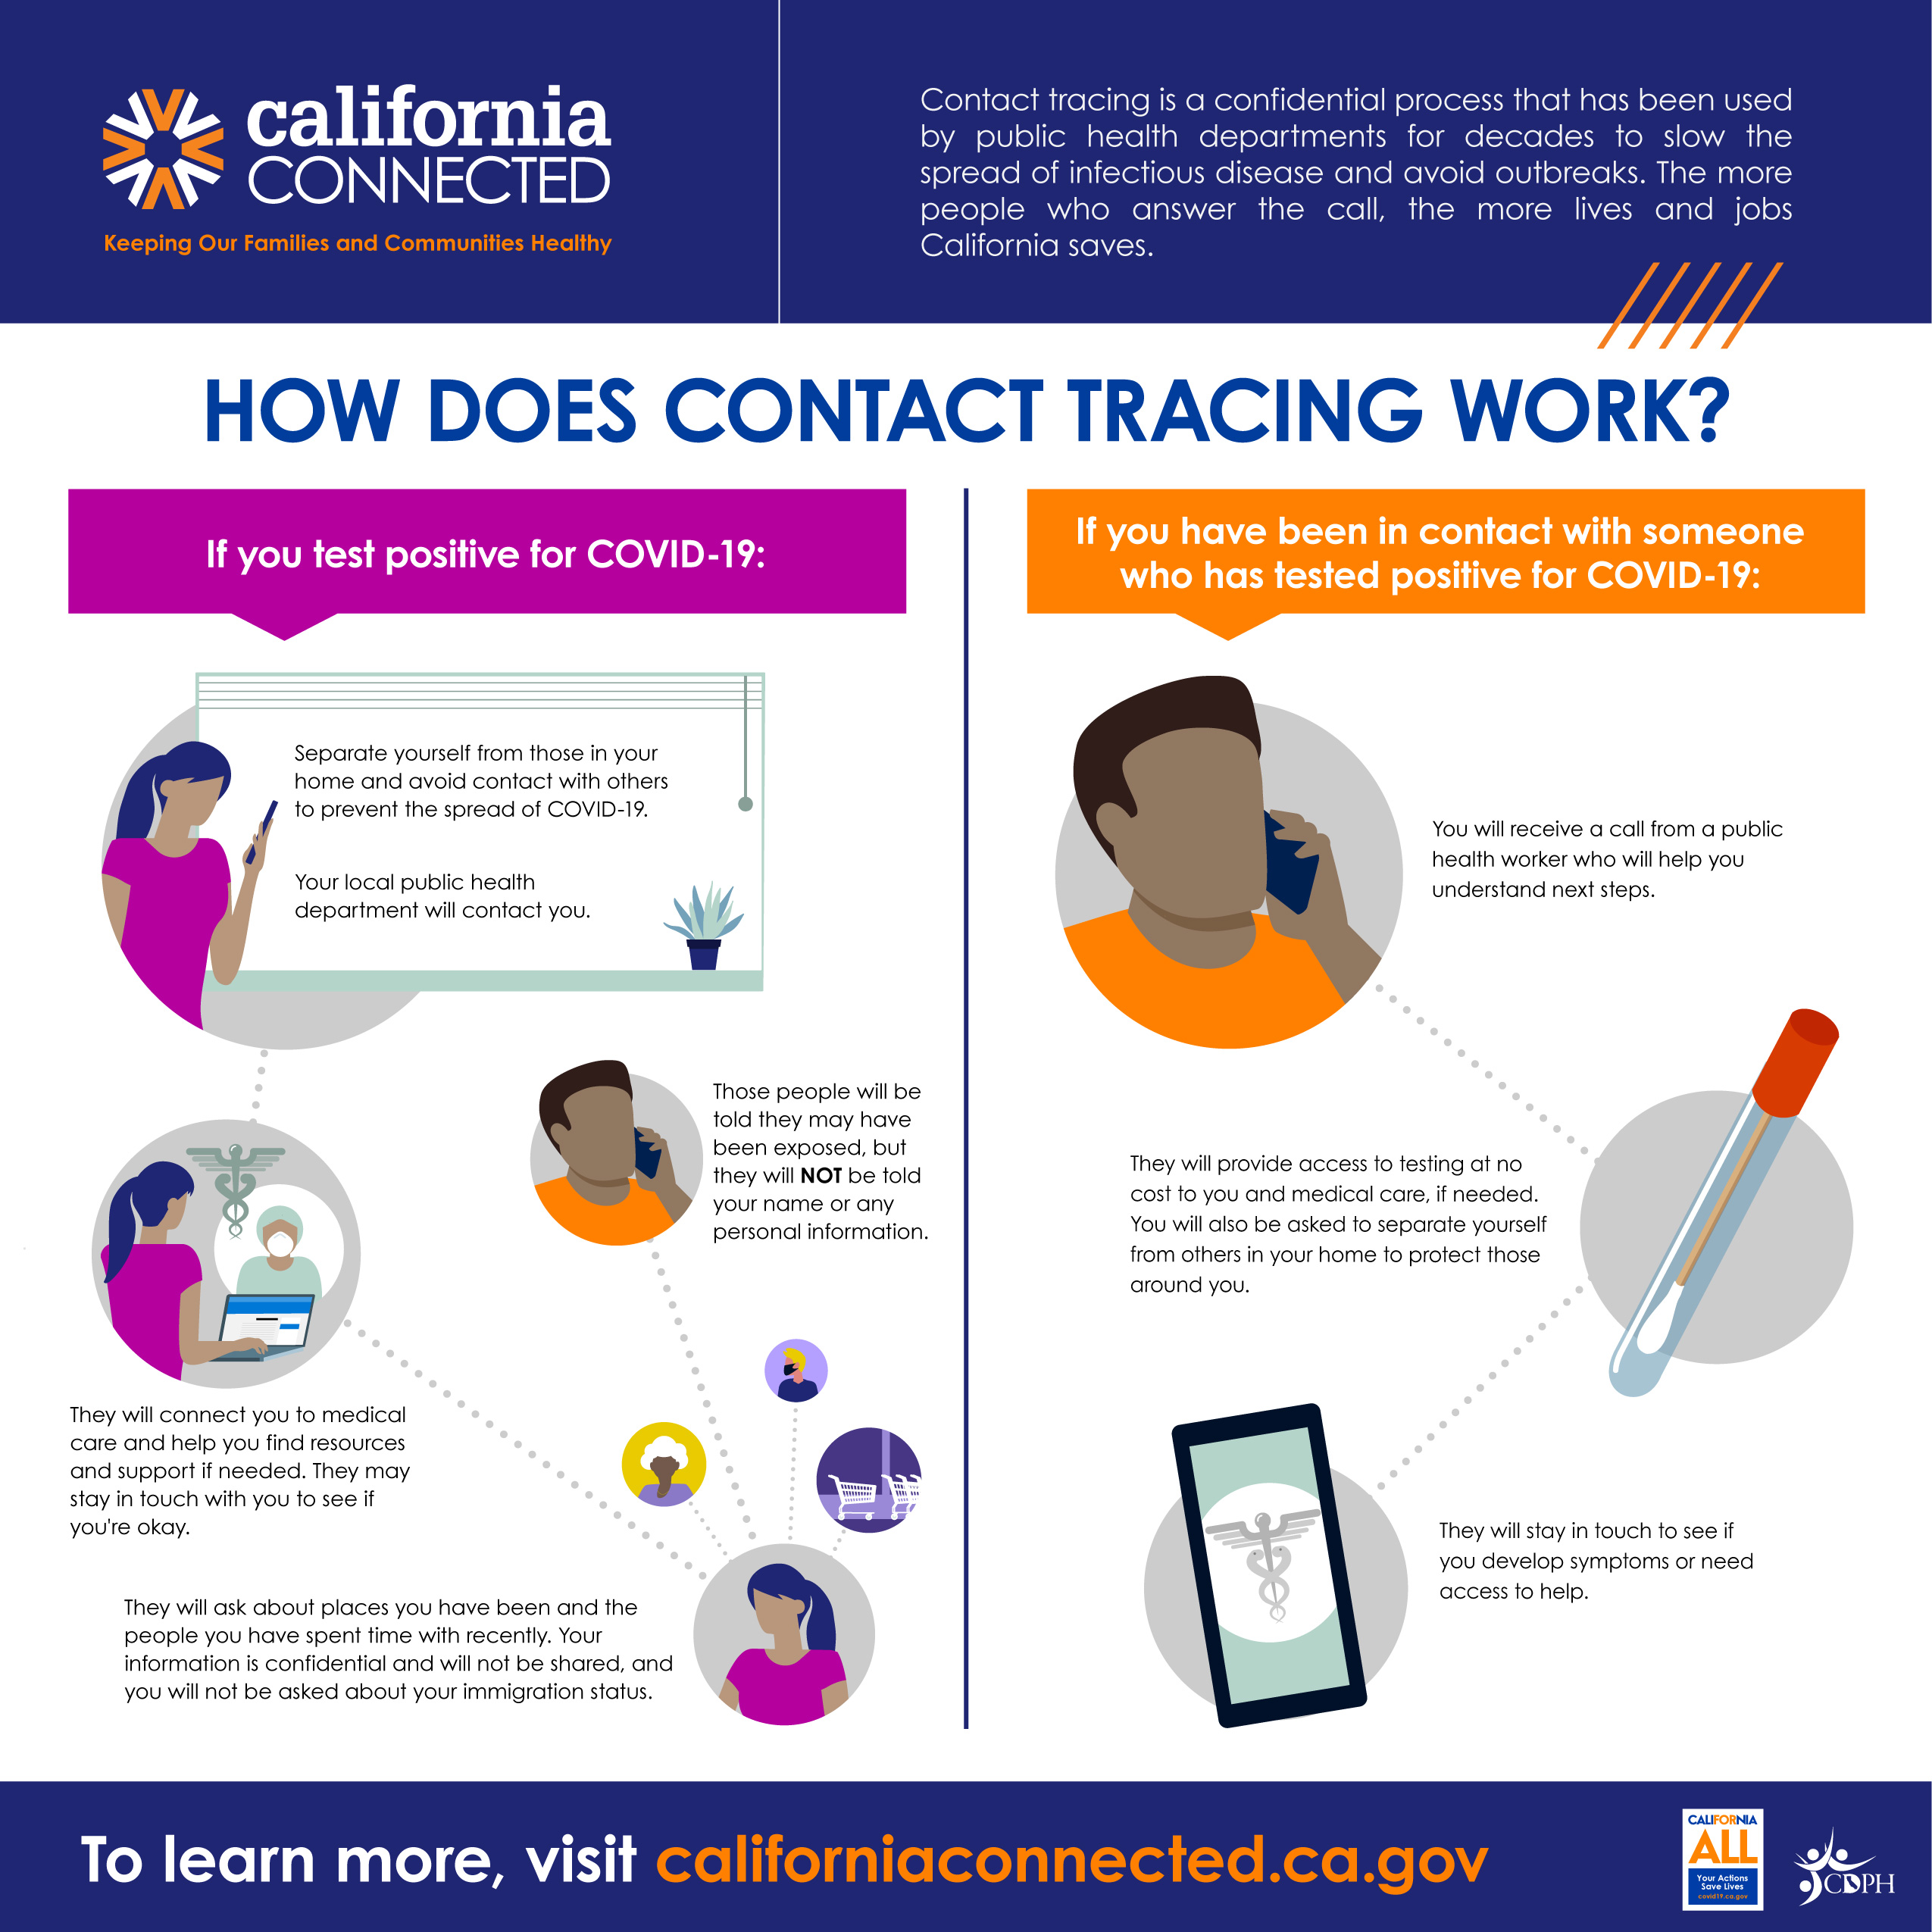 How does contact tracing work?